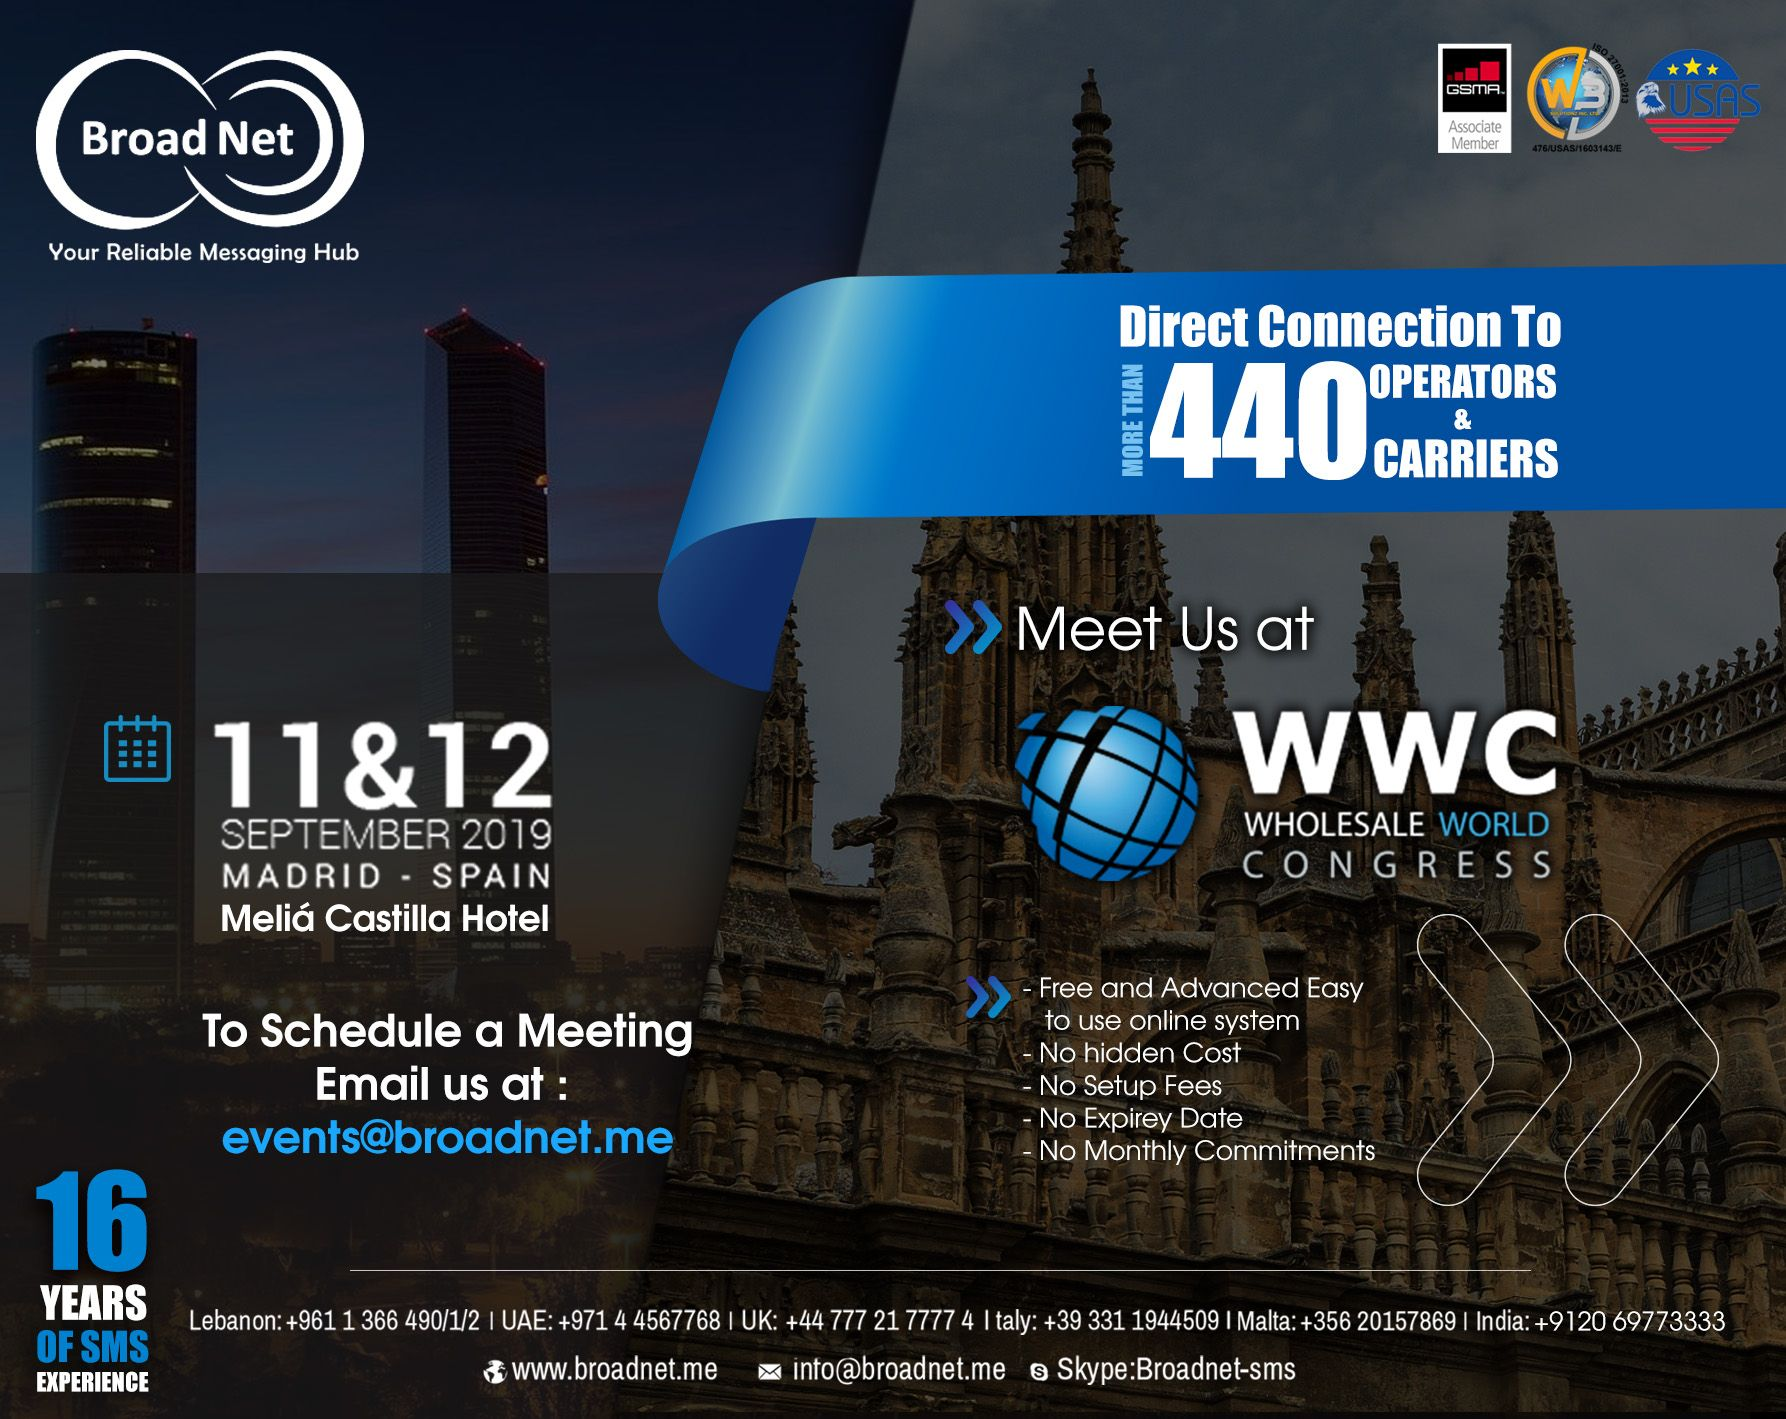 Meet us at wwc wholesale world congress Madrid To